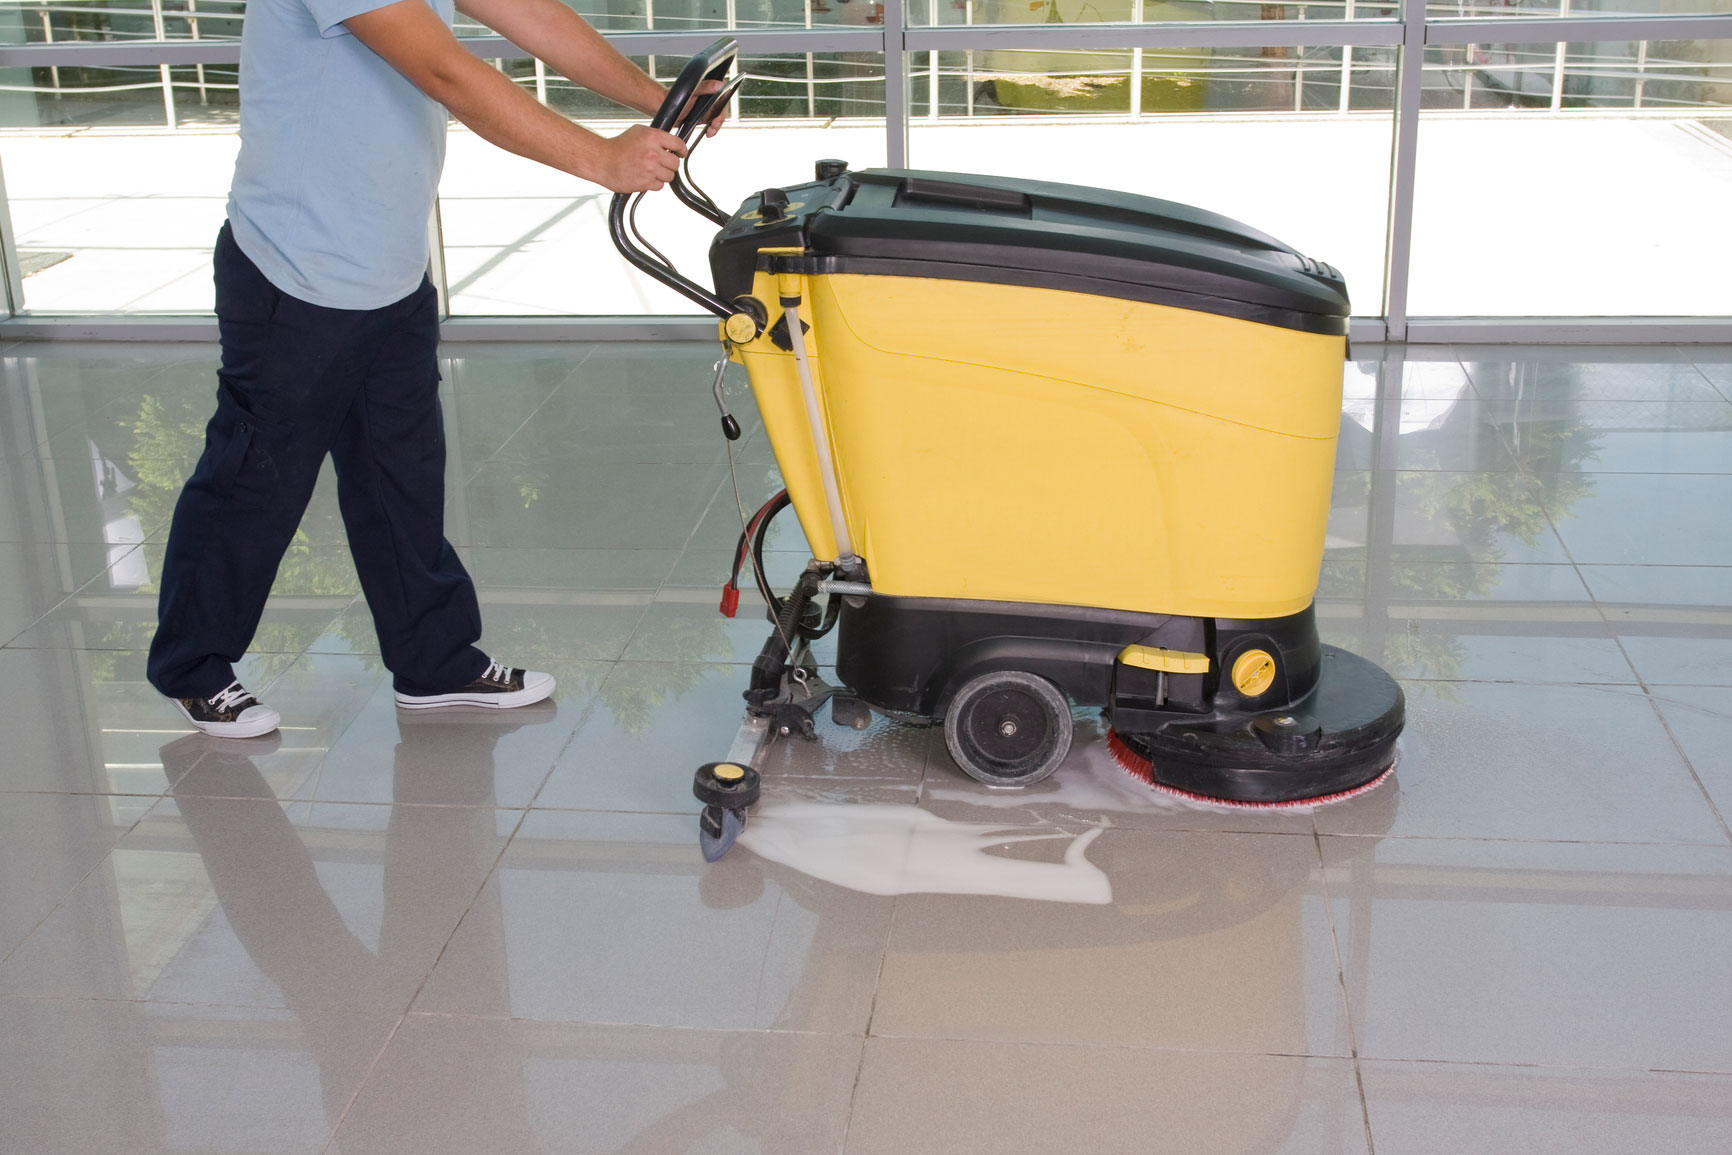 CleanStrip Stripping And Resealing Vinyl Floors - What's the best way to clean vinyl floors